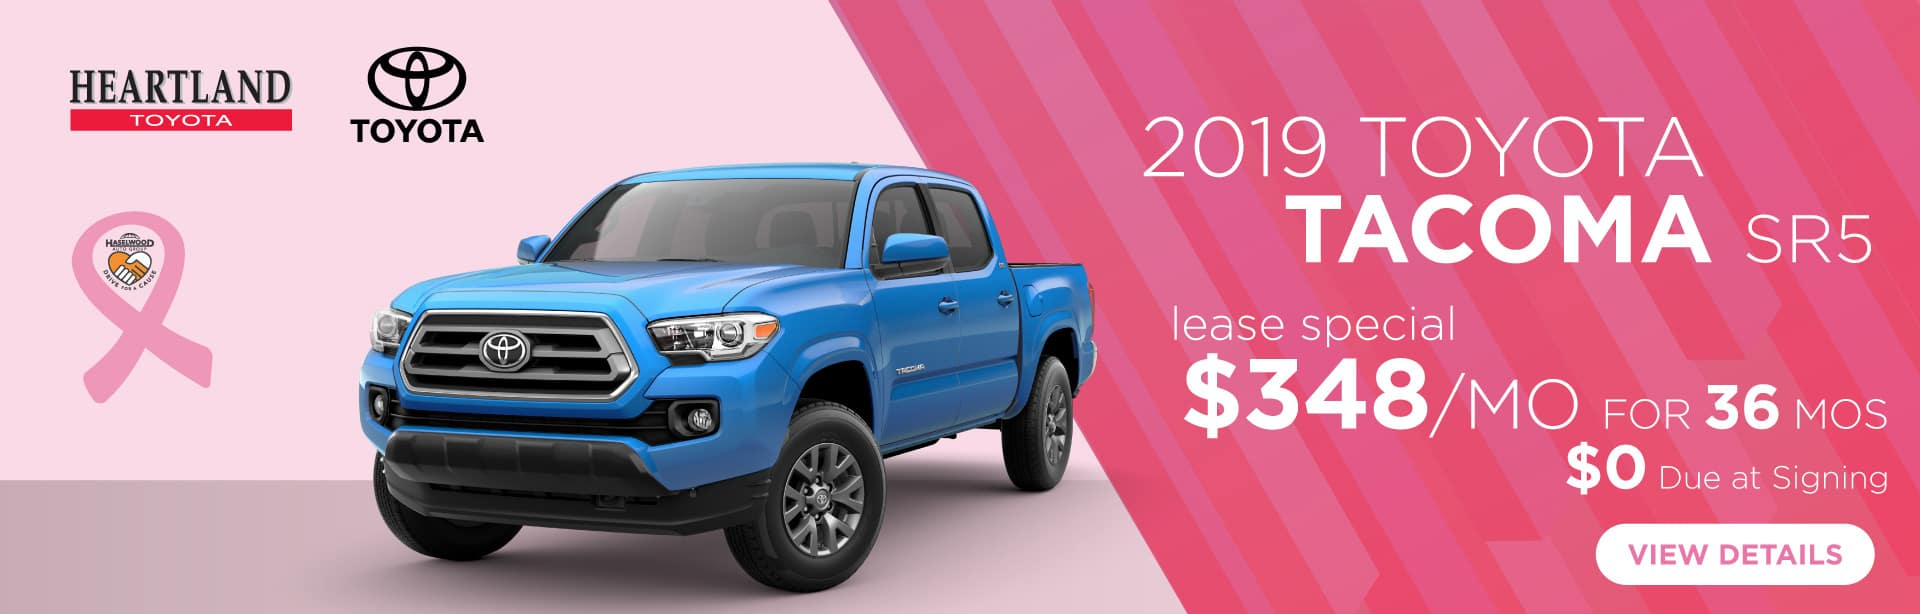 2019 Toyota Tacoma SR5 (featured vehicle)  $348/mo for 36 months* $0 Due at Signing    *Offer valid on 2019 Toyota Tacoma. $348 per month for 36 months. Lease with $0 due at signing; includes a $695 acquisition fee. Valid on VIN: 3TMCZ5AN0KM283249, 3TMCZ5AN7KM280607, 3TMCZ5AN4KM280211. MSRP $36,085. Lease is through TFS. Subject to credit approval. No Security deposit required. Excludes taxes, title, and fees. 36 monthly payments required. Not all lessees will qualify for lowest payment through participating lender. Residency restrictions apply. Lessee responsible for mileage over 10,000 miles per year at $0.15/mile per year. Option to purchase at lease end. A negotiable dealer documentary service fee of up to $150 may be added to the sale price or capitalized cost. Offer expires 11/4/2019.